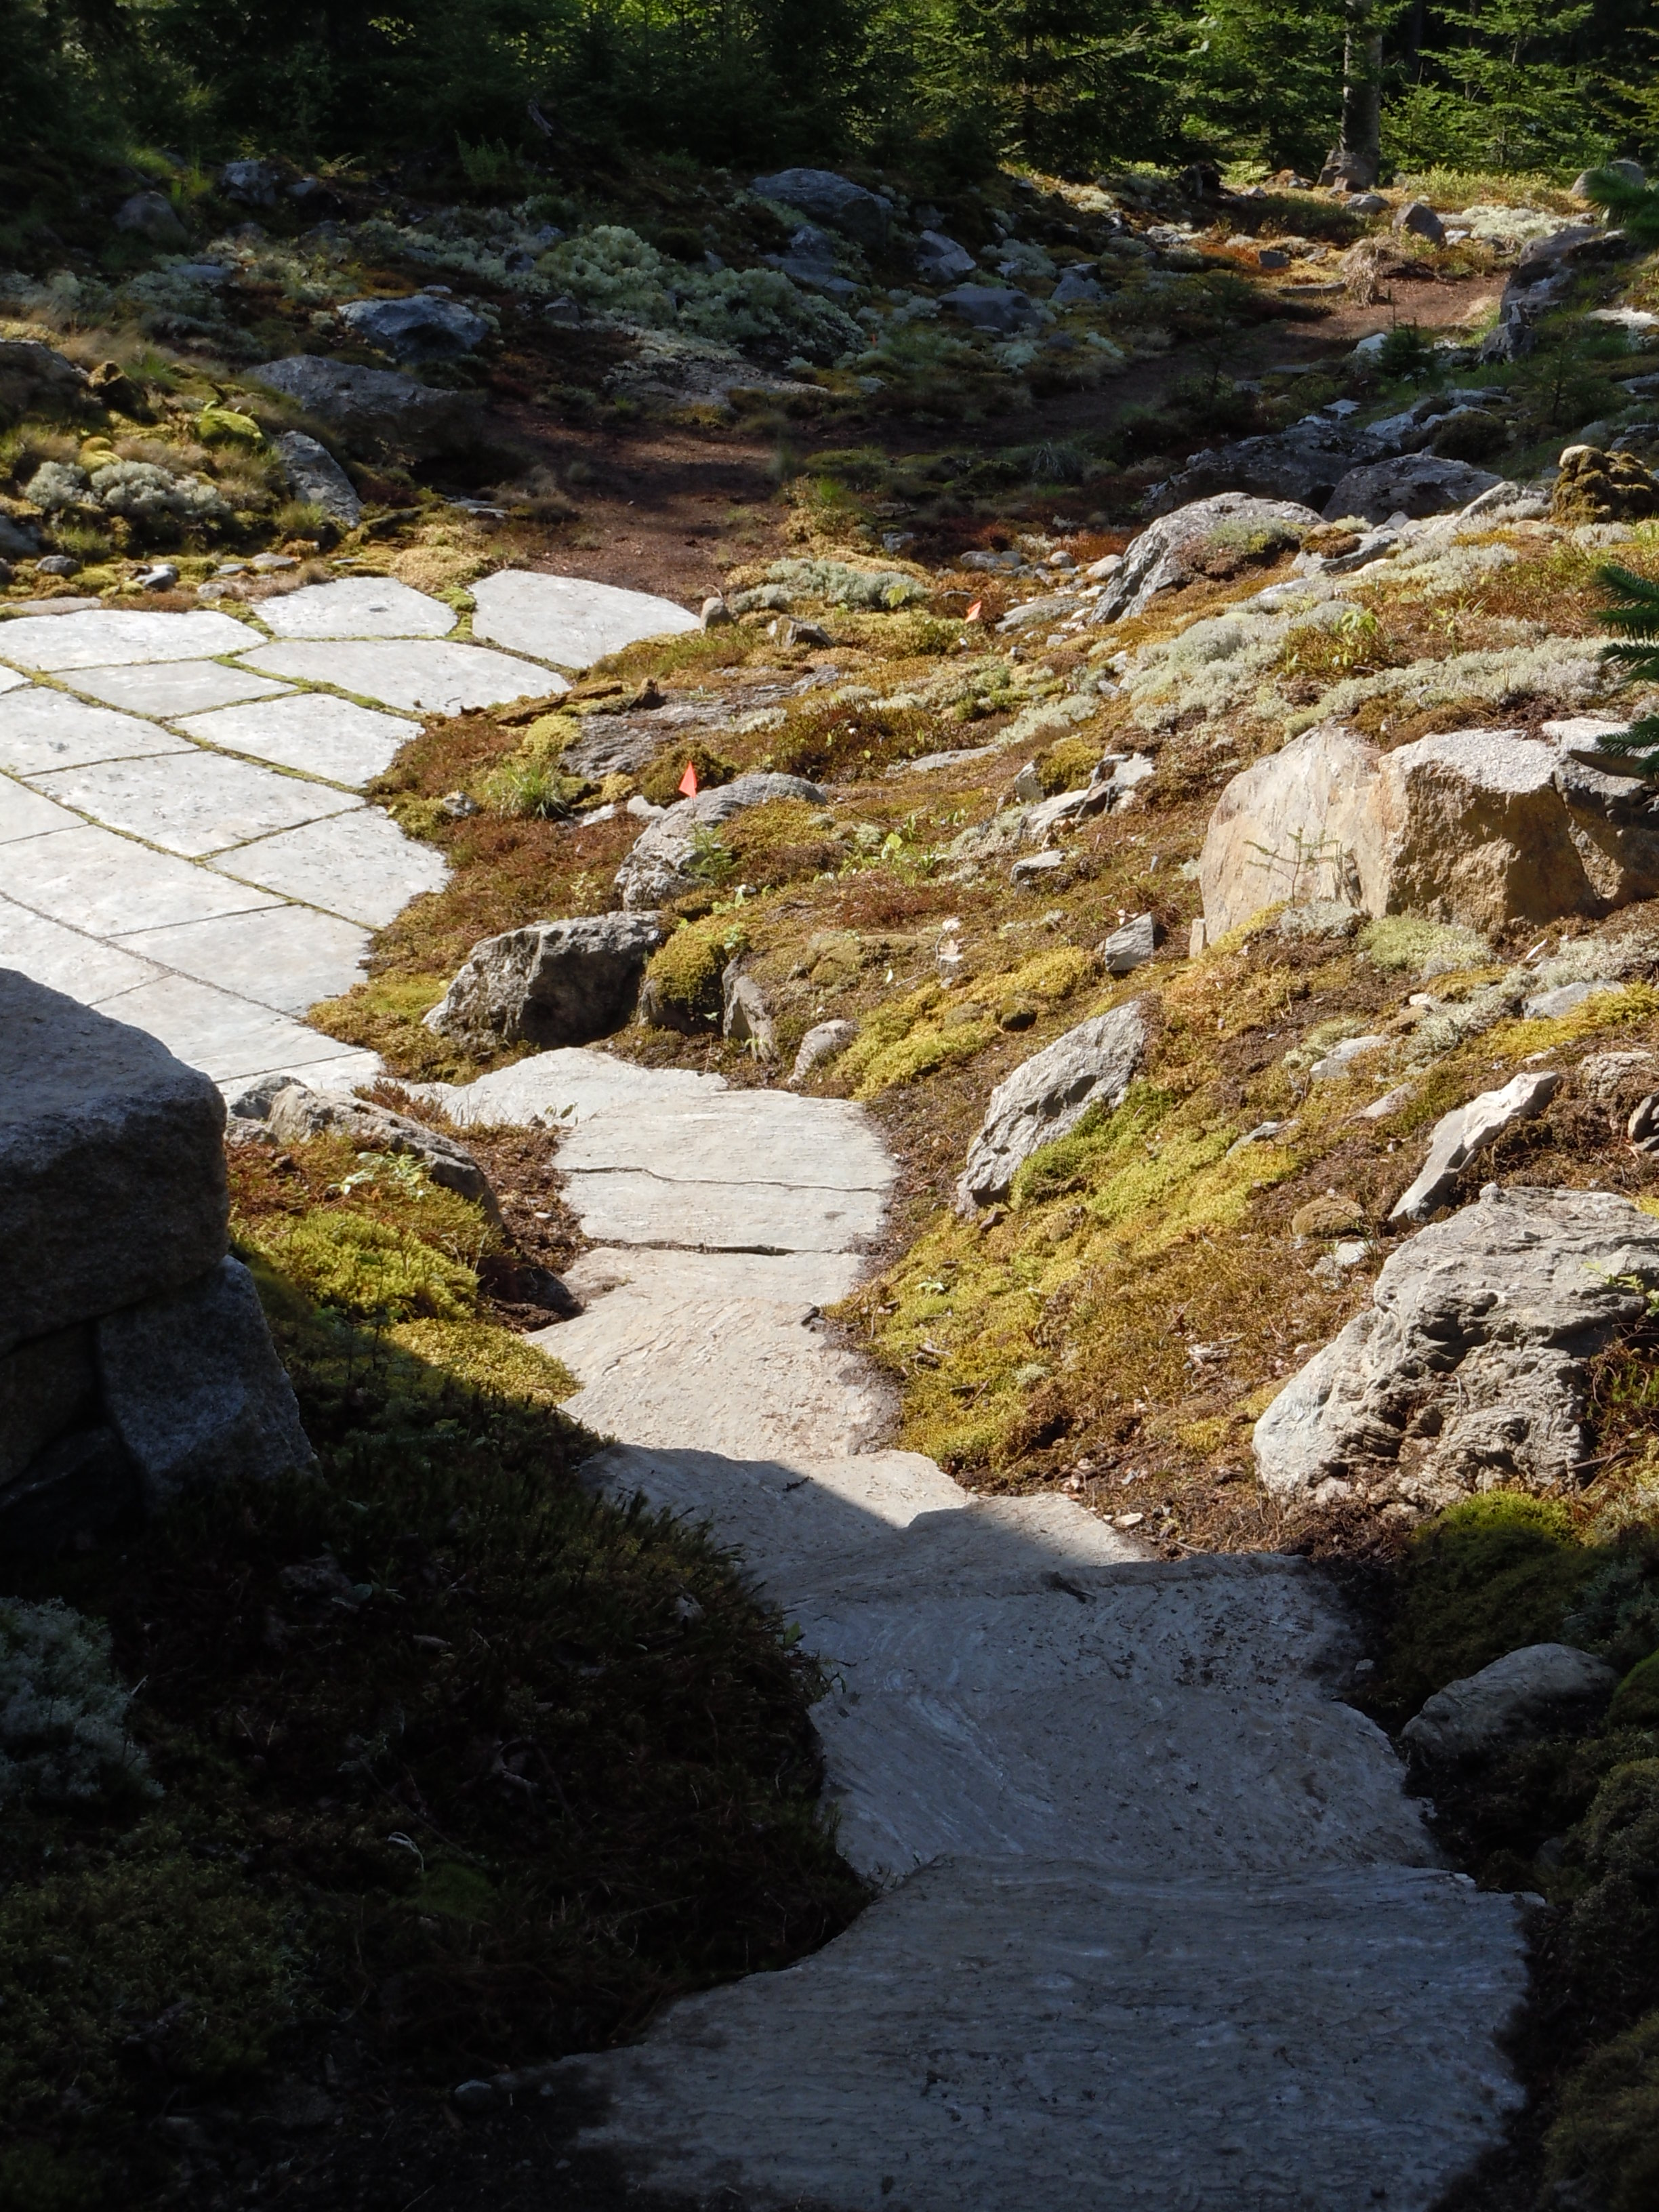 Southwest Harbor ME  - After extensive removal of ledge we were able to build this set of stairs. Prepping surrounding area to naturalize with mosses and lichens. Patio stones by Freshwater Stone. Design by Hank Gilpin and BHS.